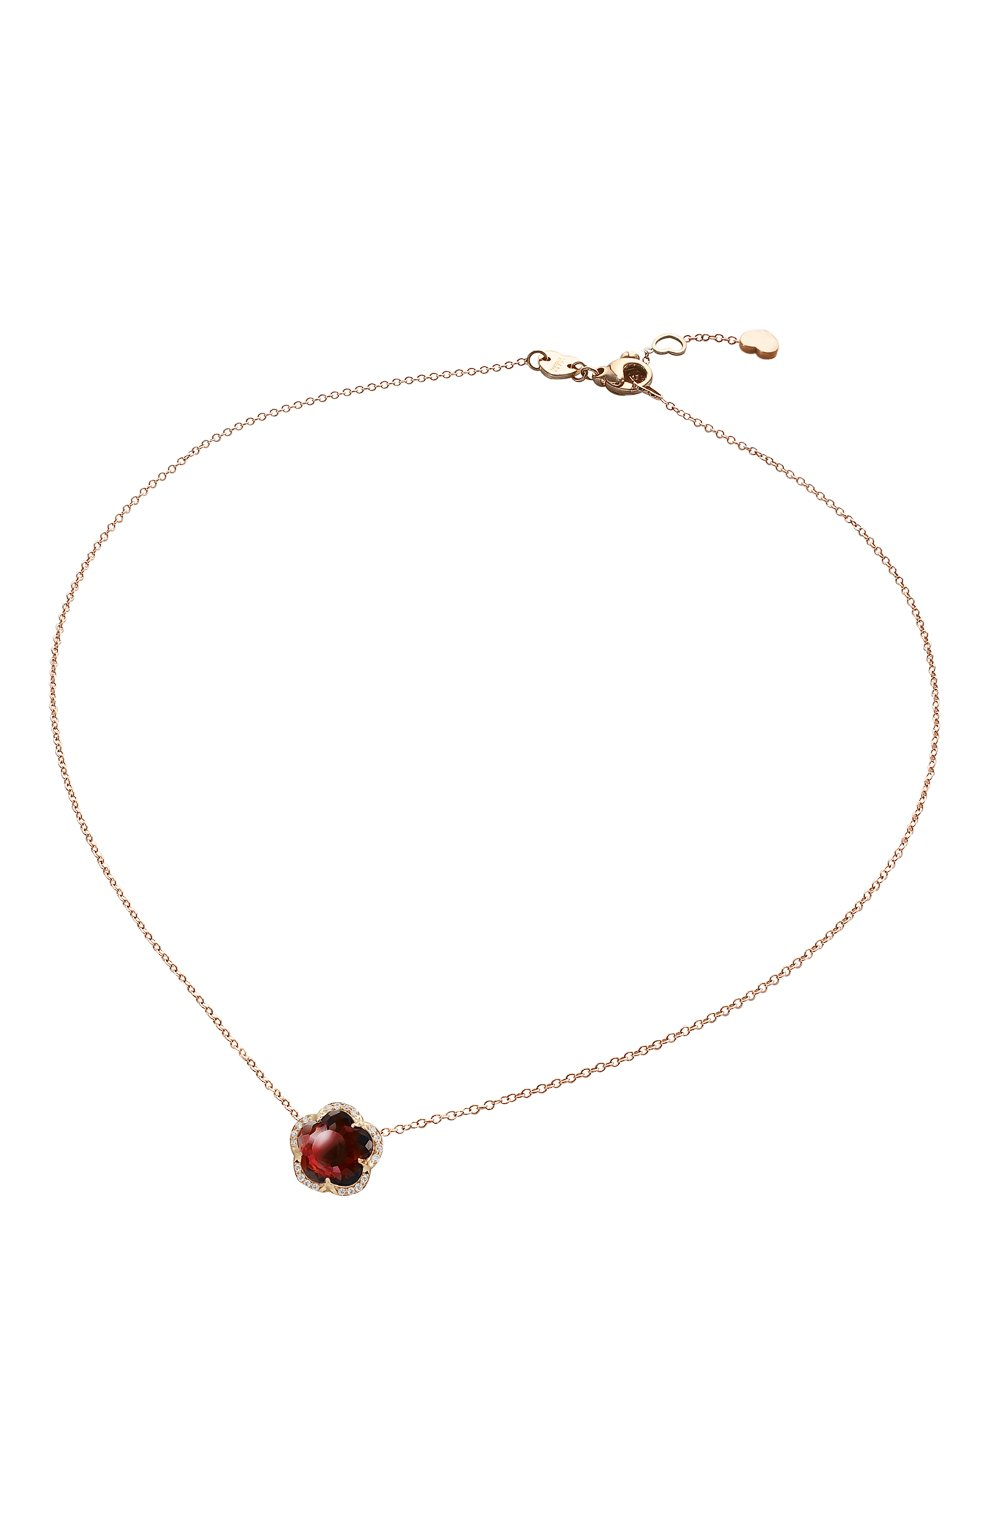 Necklaces Je T'aime with Red Garnet